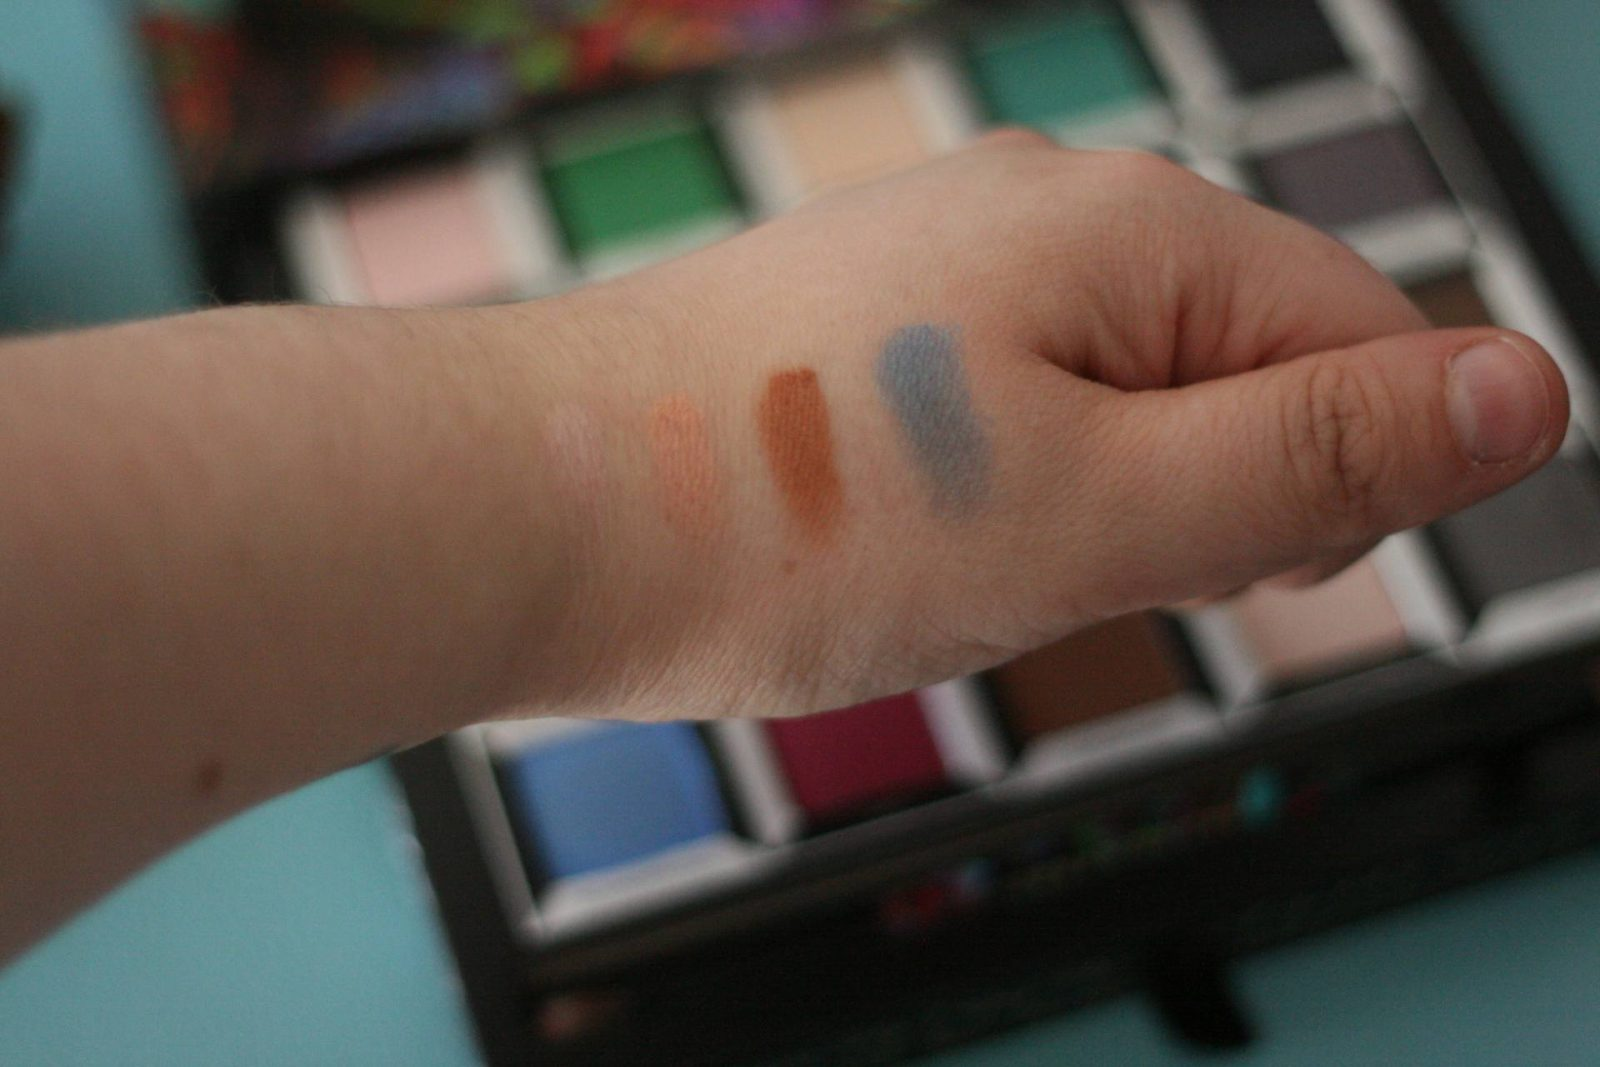 Urban Decay Alice in Wonderland Through the Looking Glass Palette - swatches (Alice)